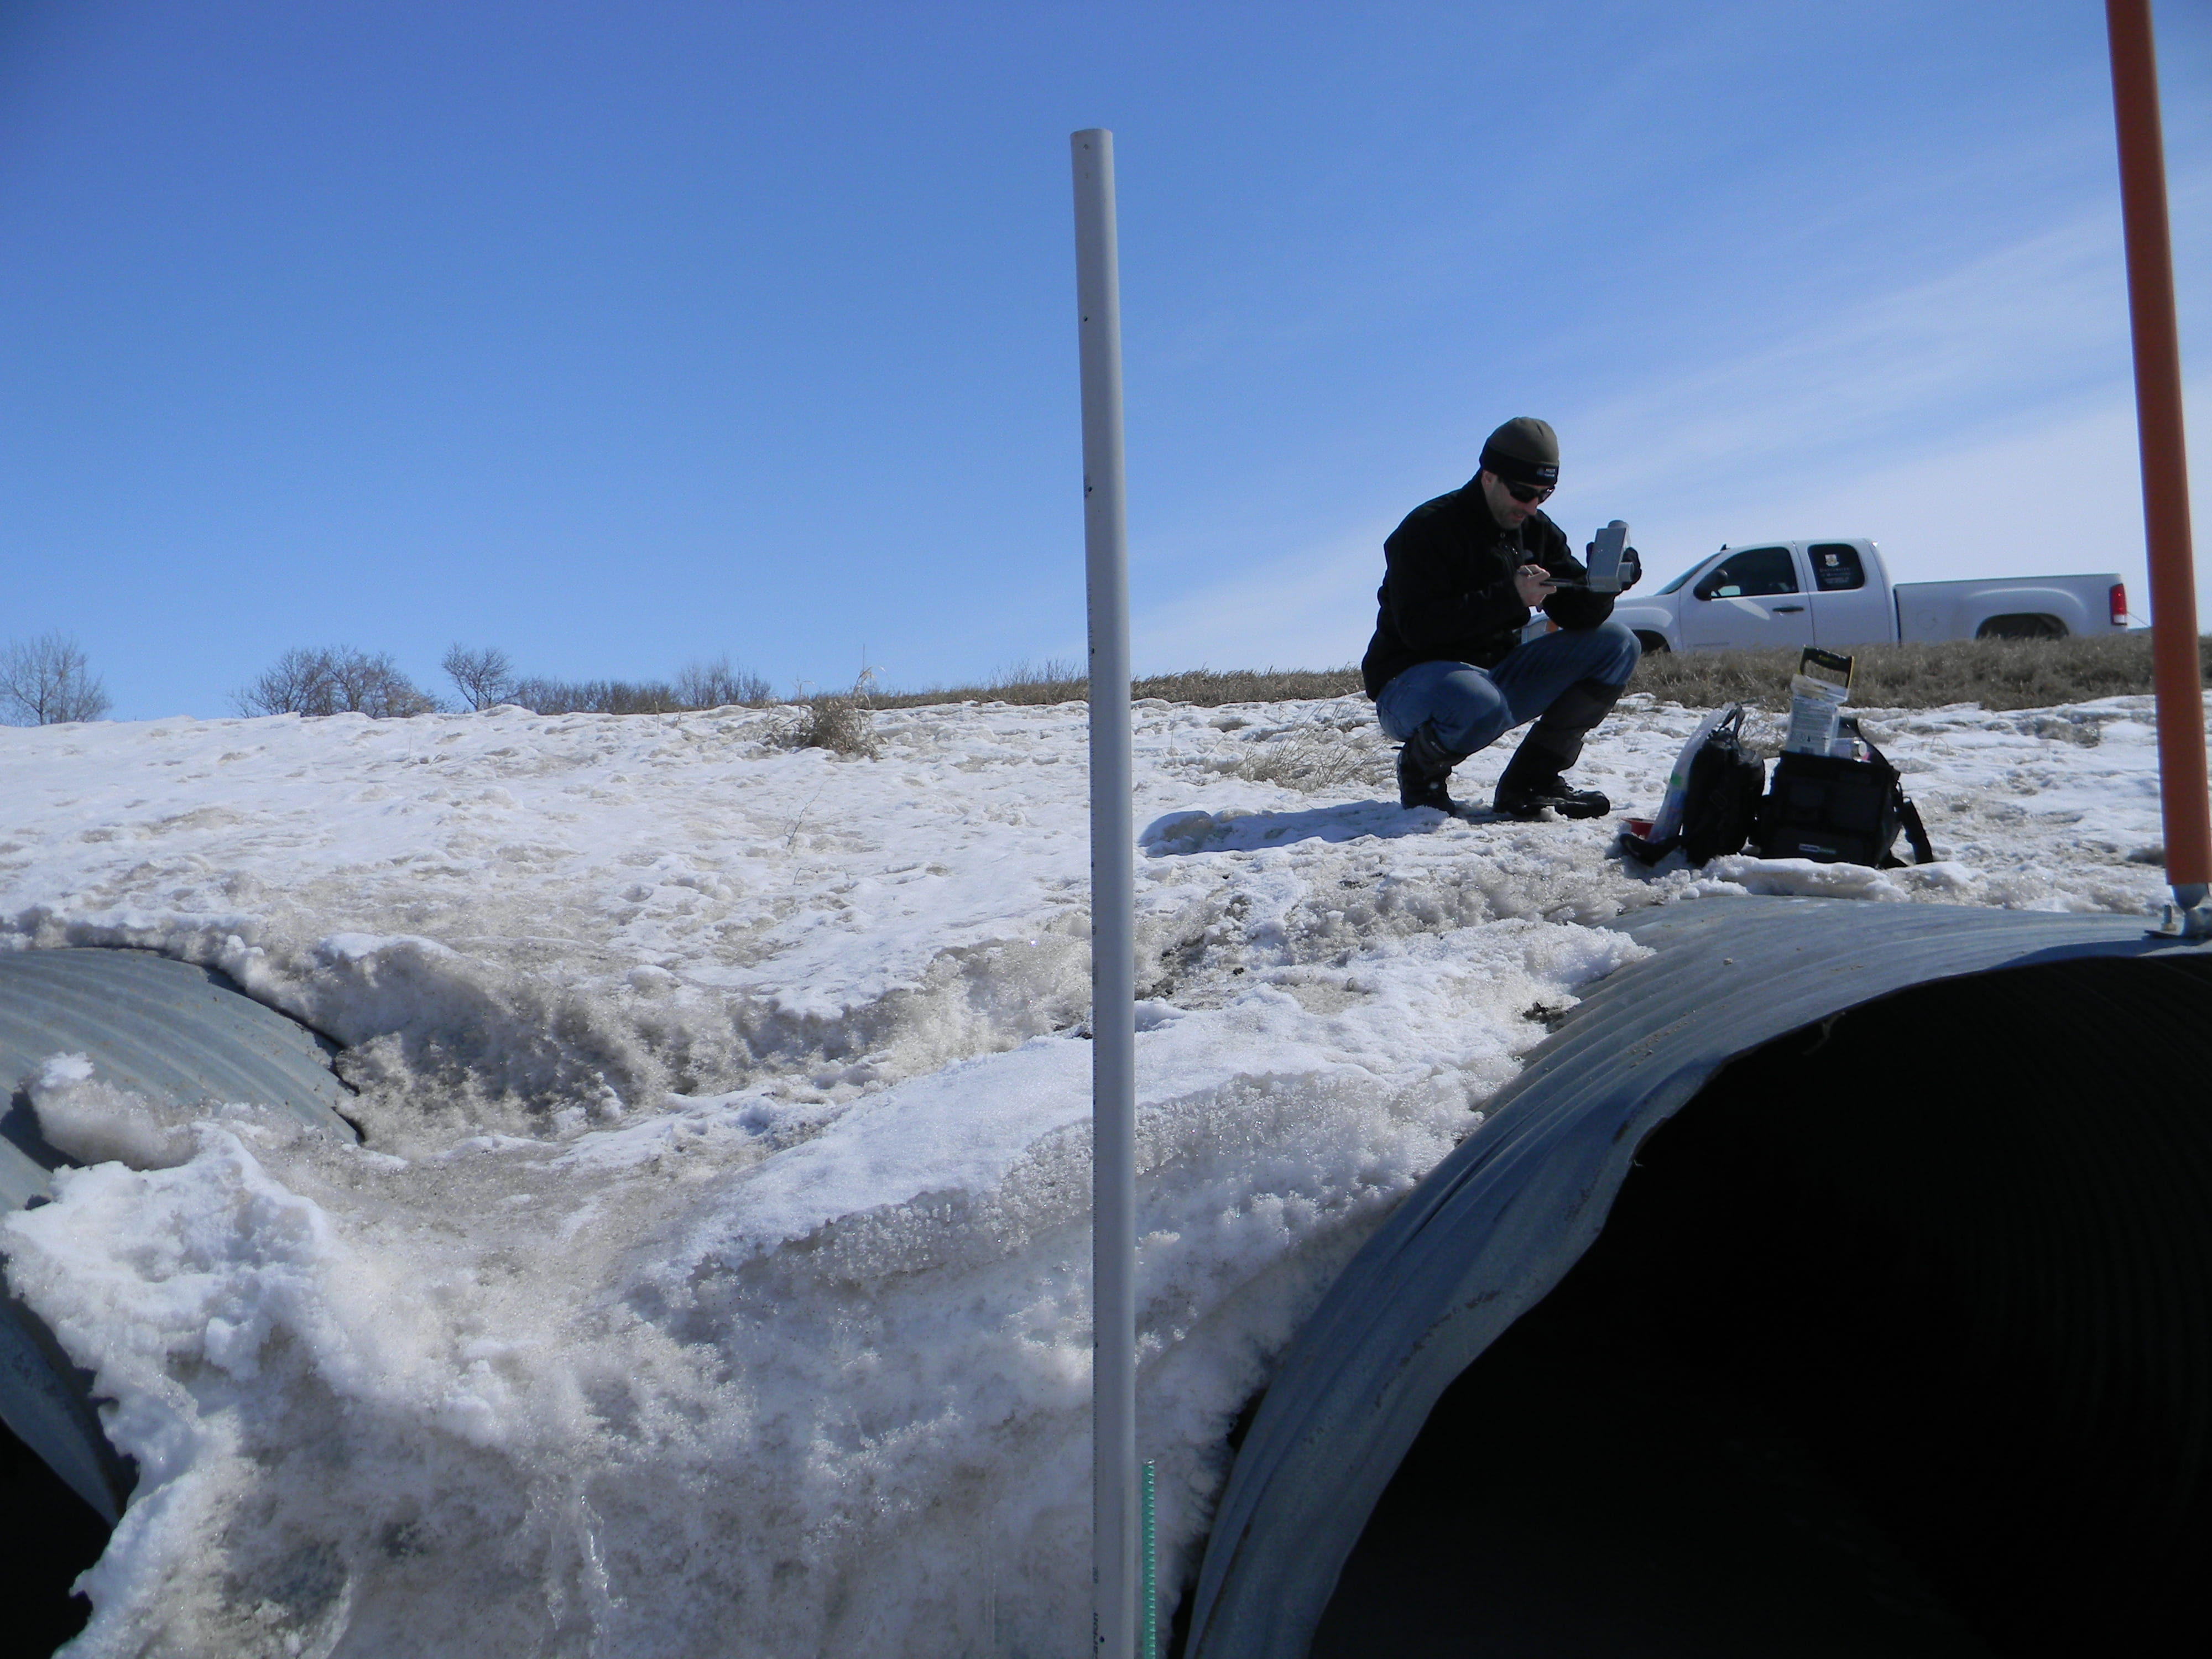 Lasalle River Watershed, March 2013 - Figuring out how to instrument snow-filled culverts